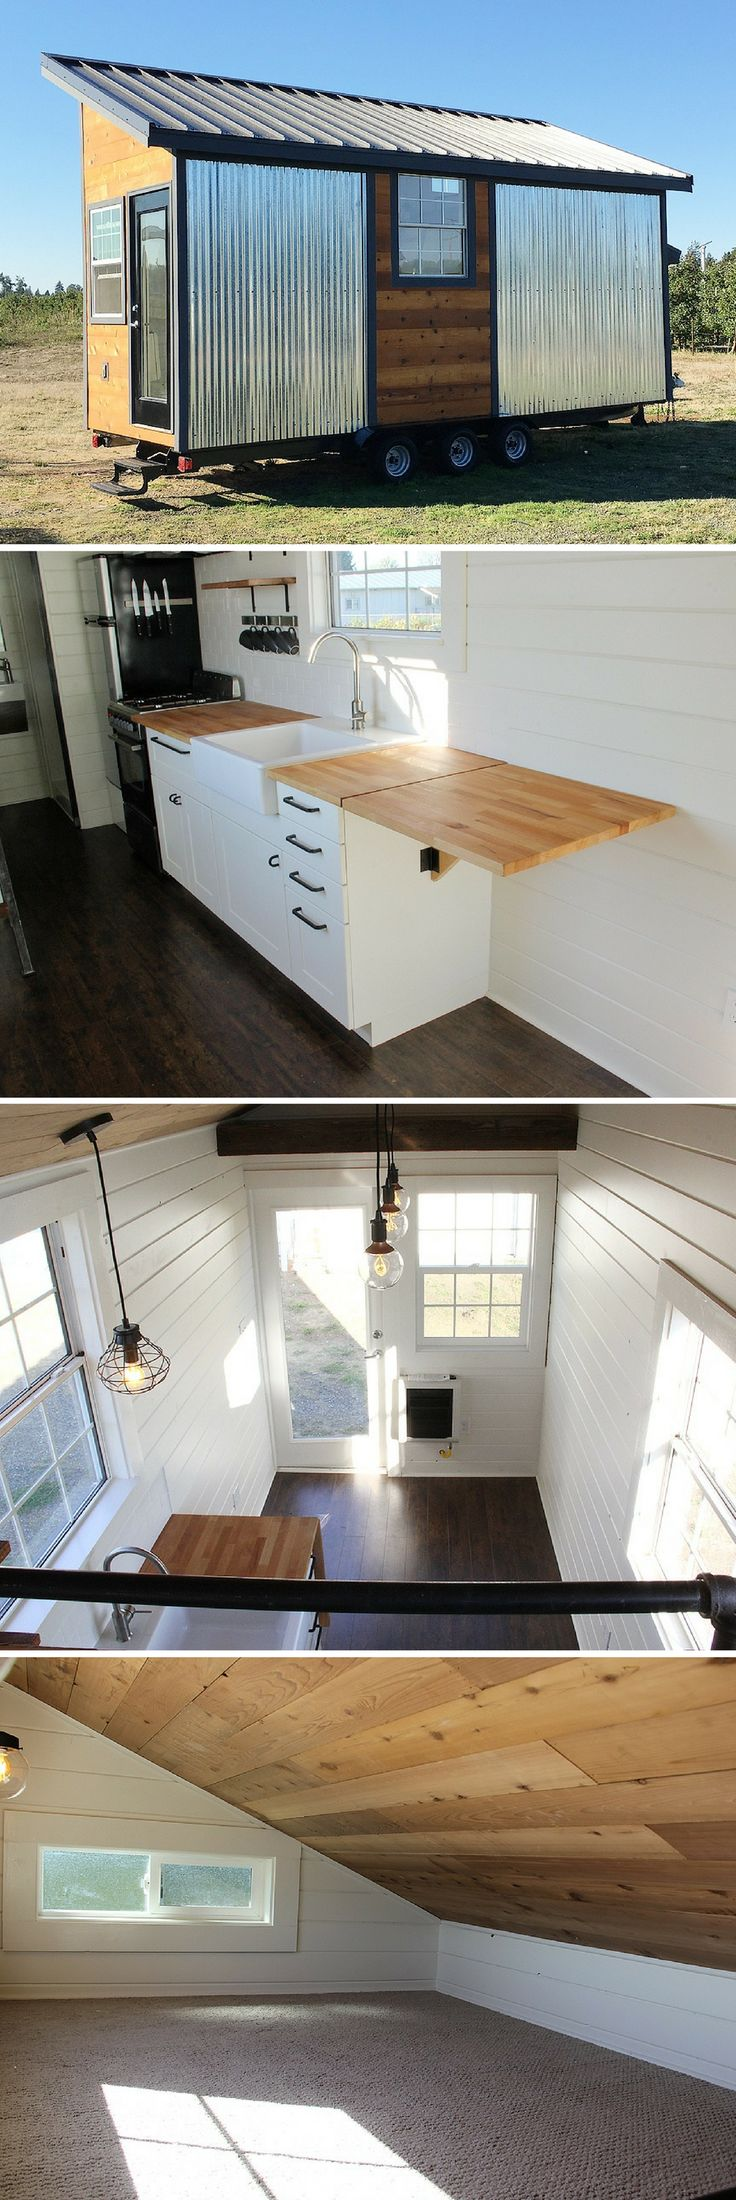 1000 images about Backyard Studio on Pinterest Tiny house